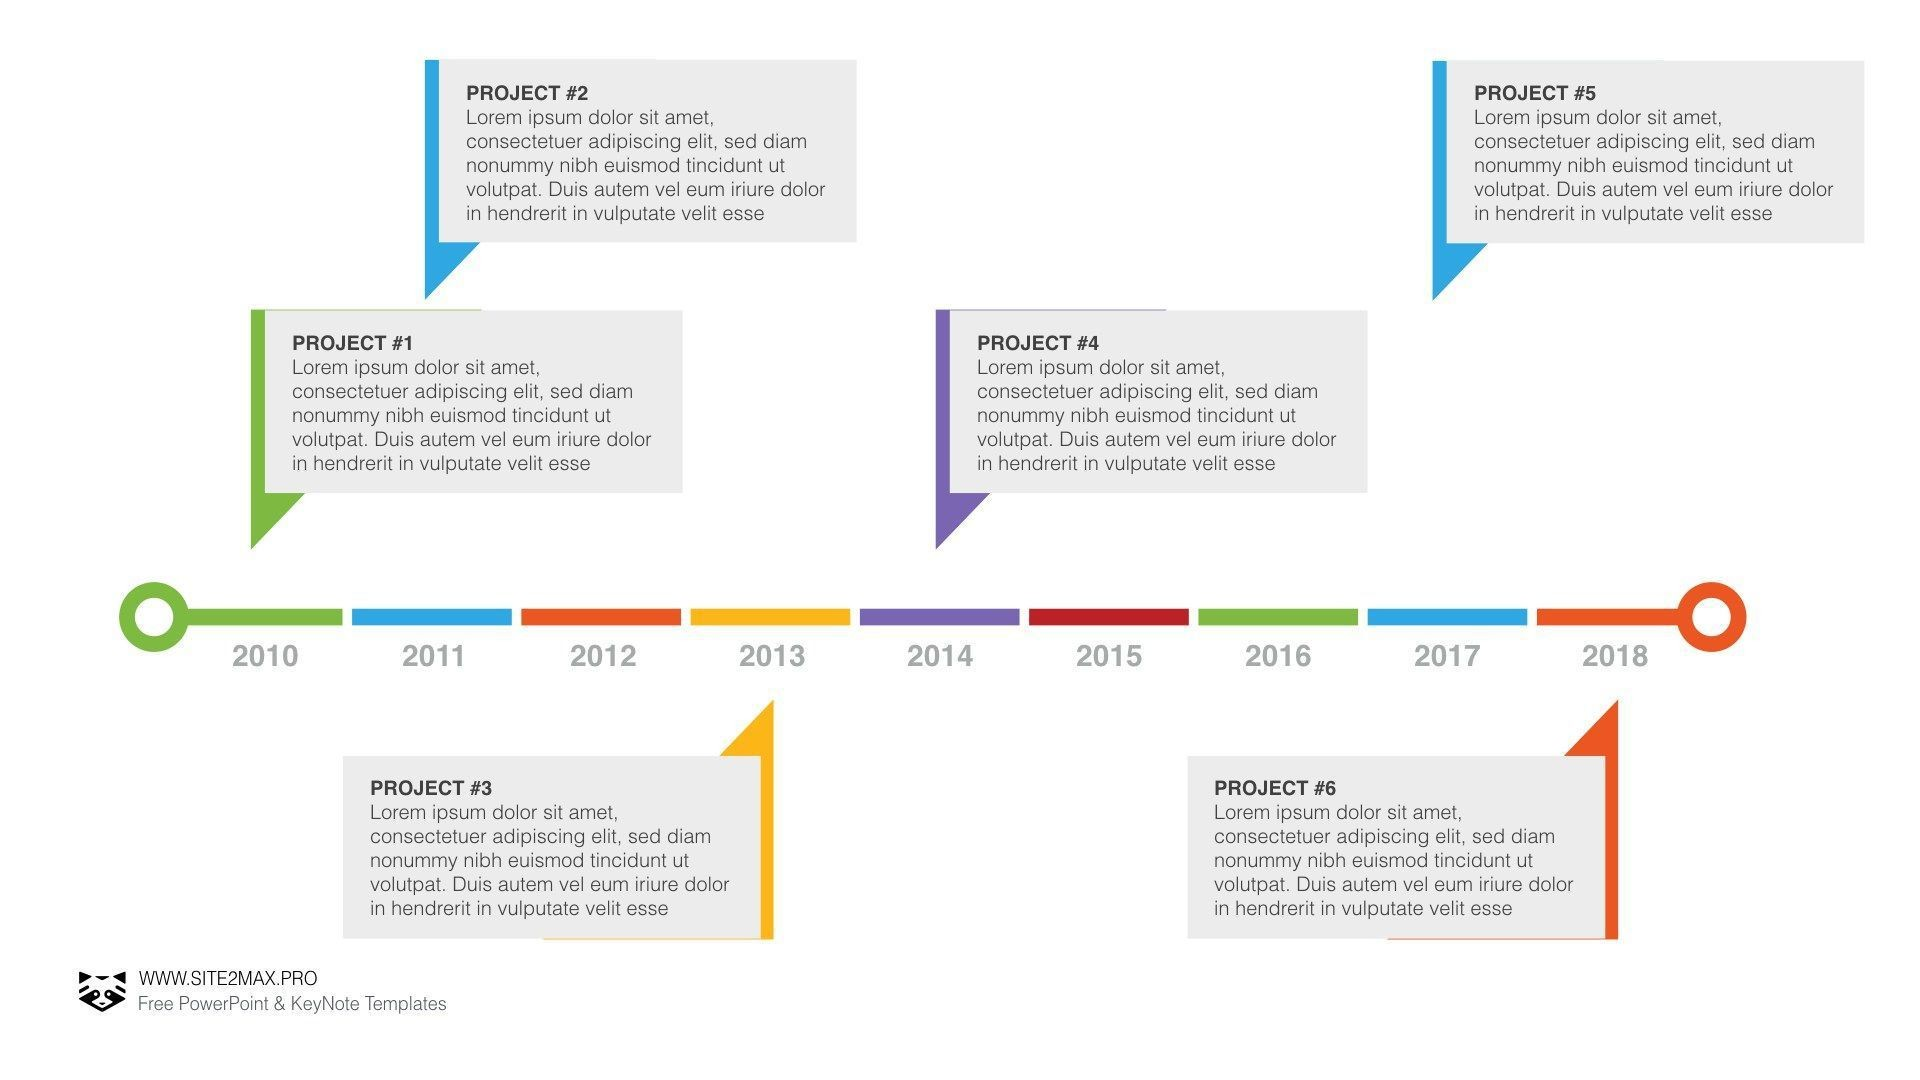 004 Shocking Timeline Powerpoint Template Download Free Inspiration  Project Animated1920